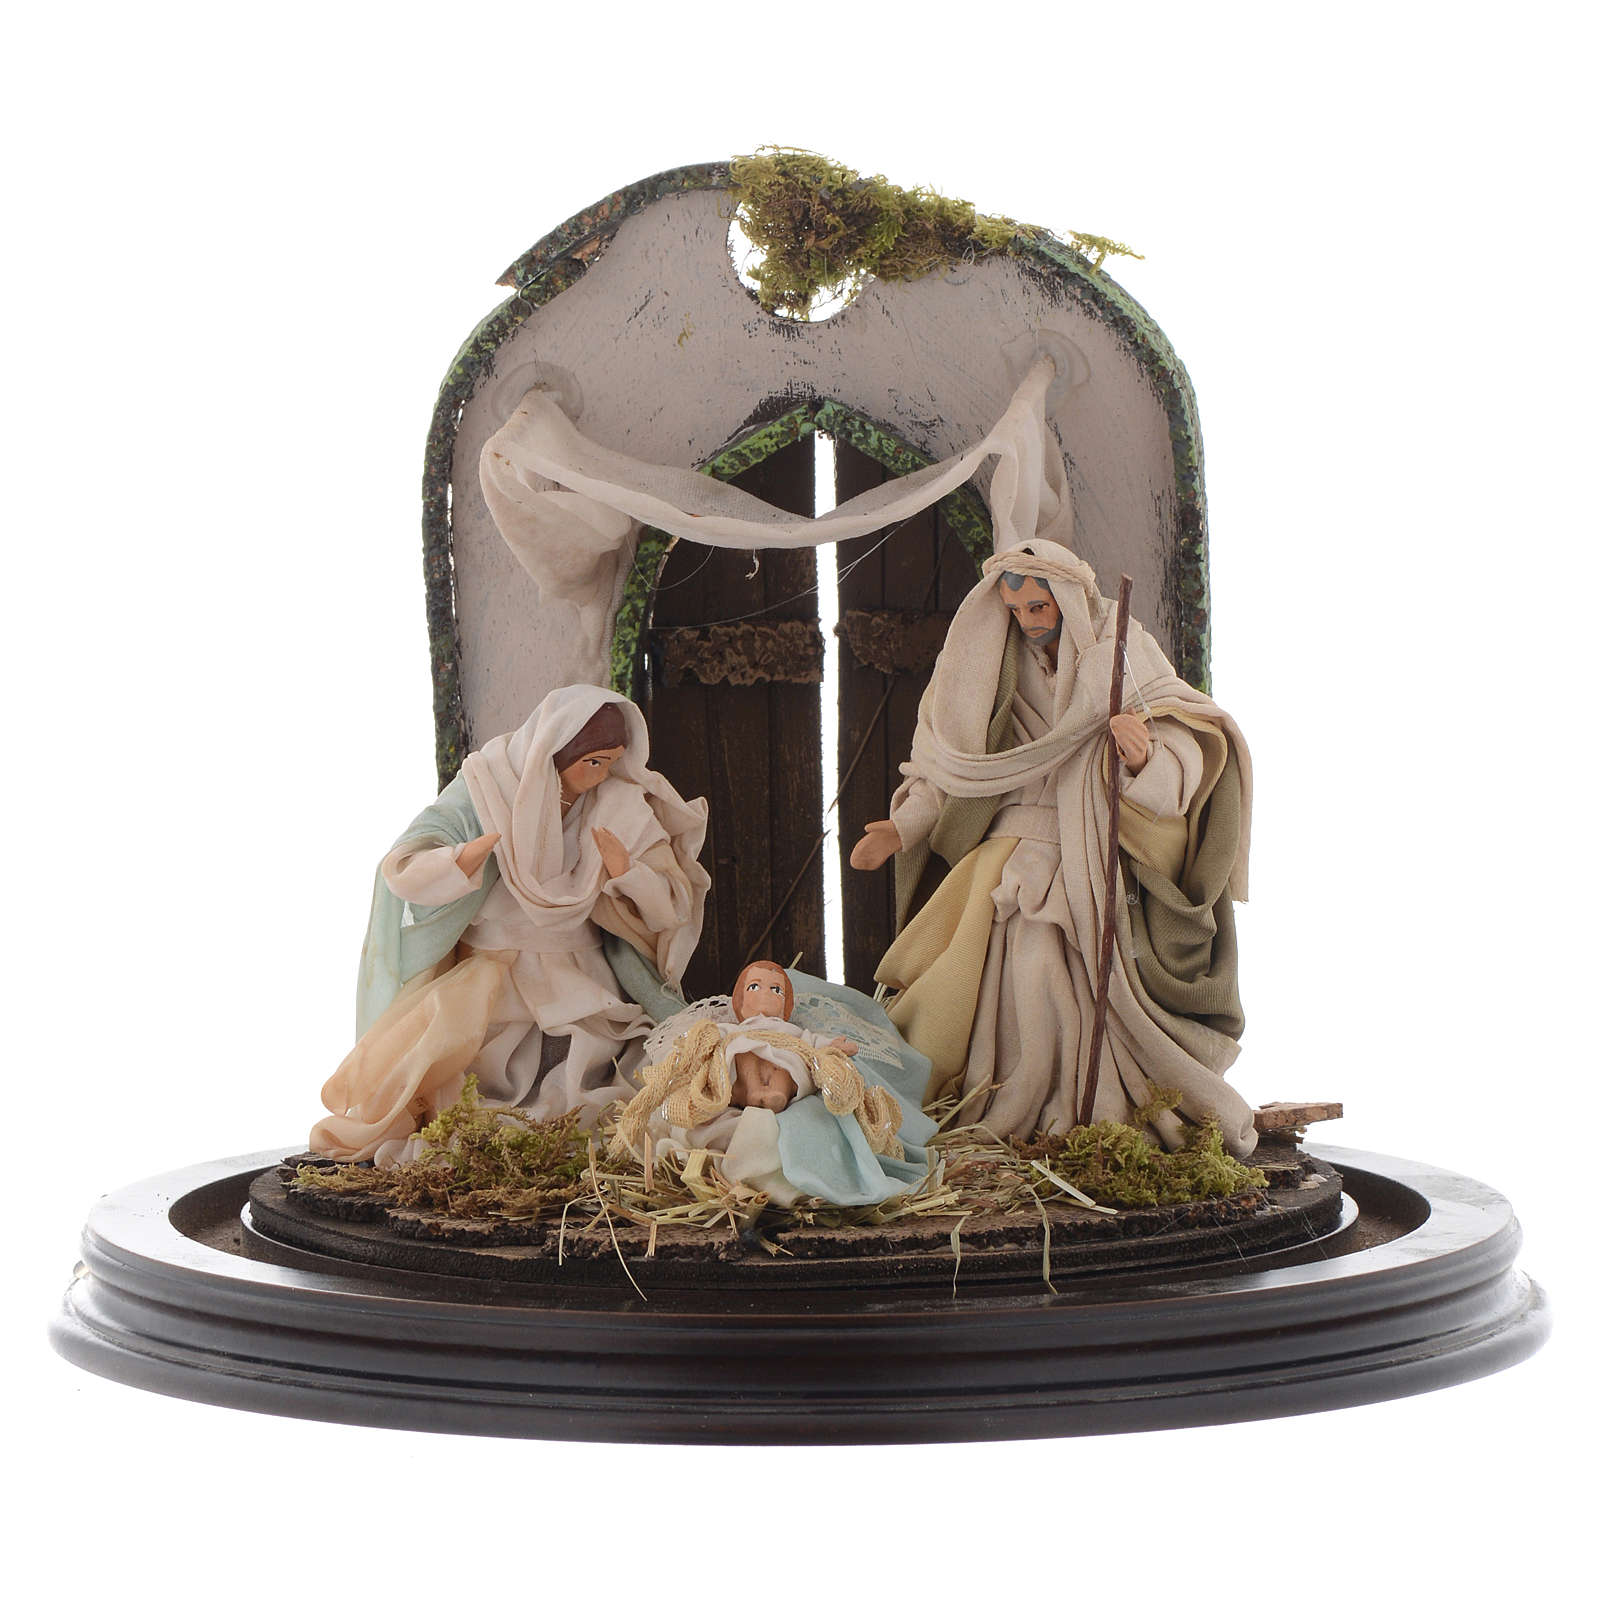 Nativity scene with glass domed roof on a wooden base for Neapolitan nativity scene 4